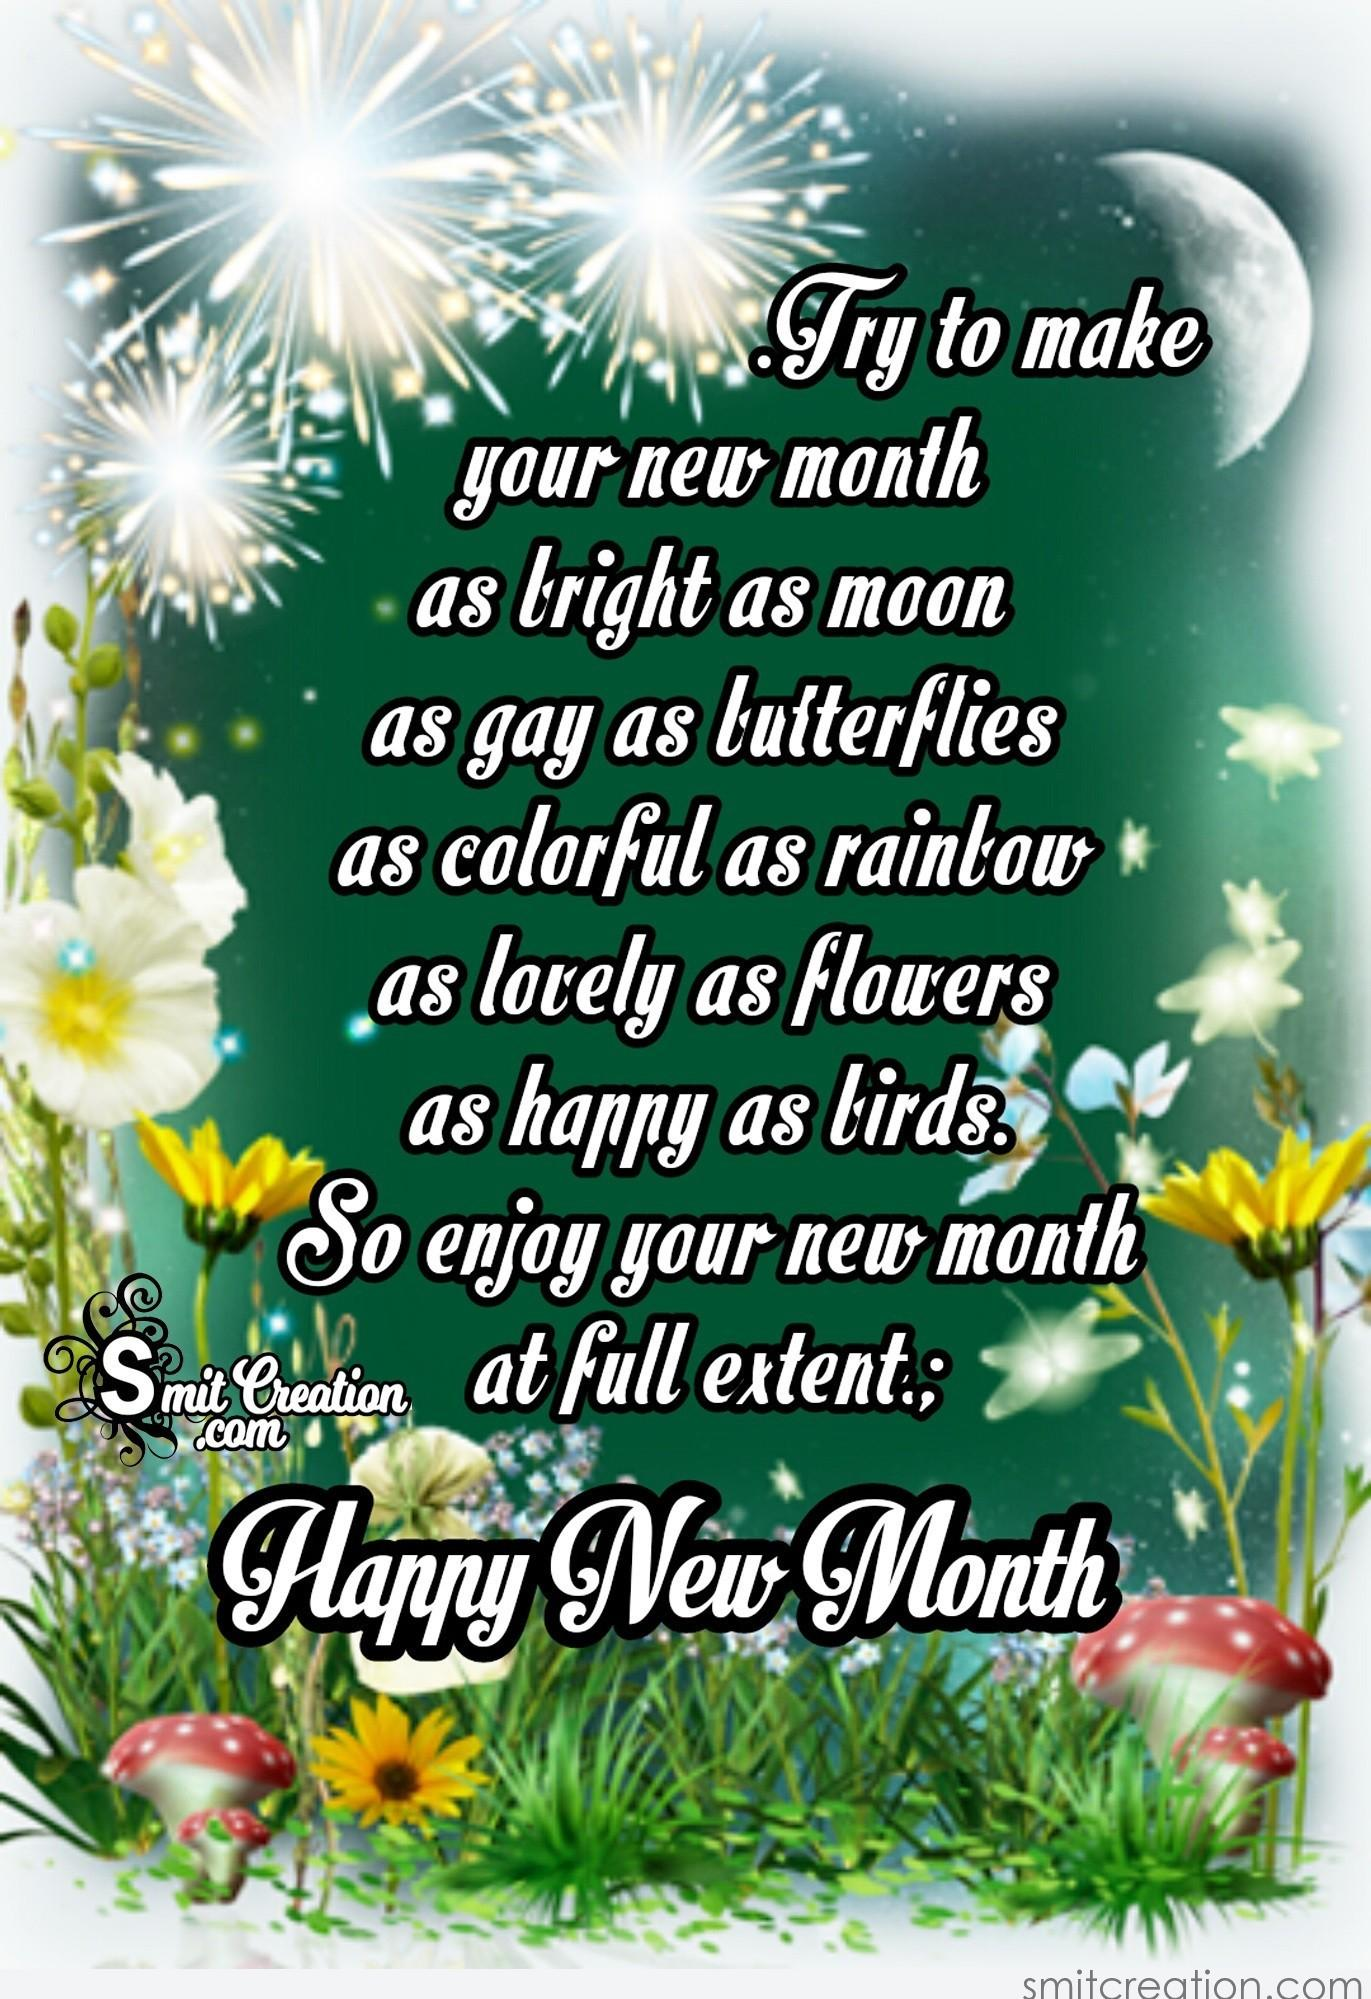 Happy new month enjoy your new month smitcreation try to make your new month as bright as moon as gay as butterflies as colorful as rainbow as lovely as flowers as happy as birds so enjoy your new month m4hsunfo